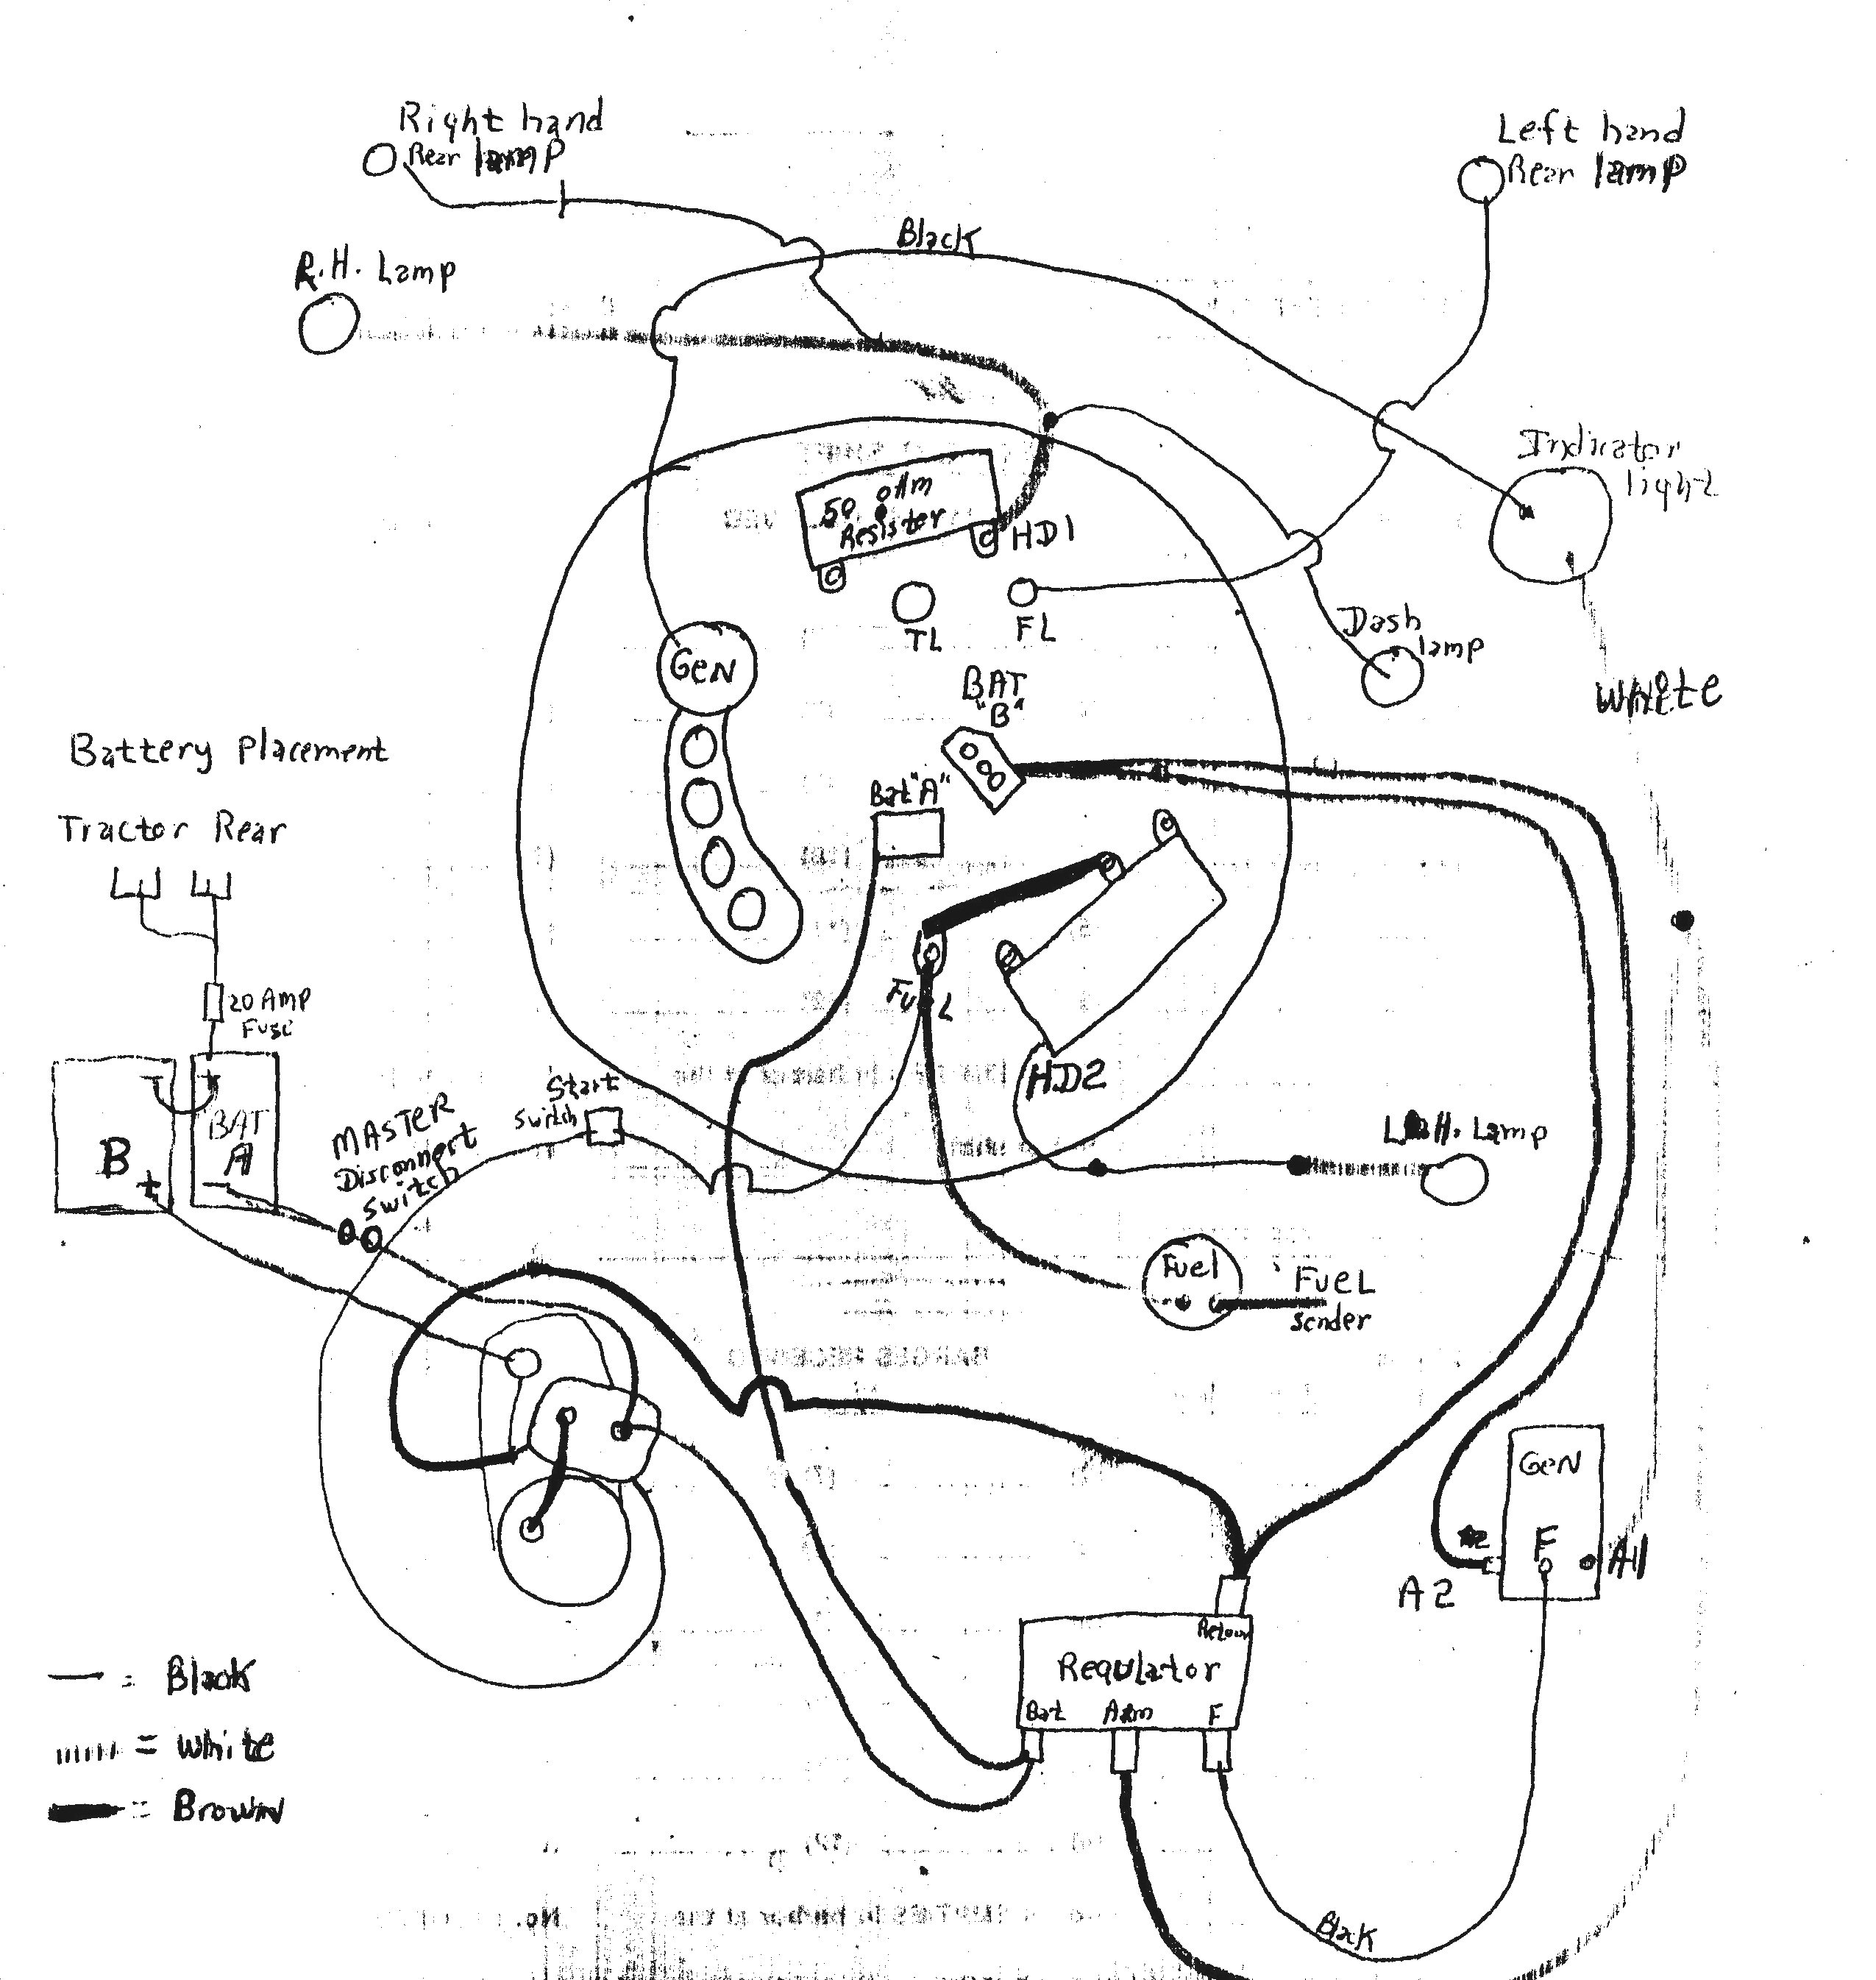 The John Deere 24 Volt Electrical System Explained John Deere 4020 Tractor Schematic John Deere 4020 Electrical Diagram